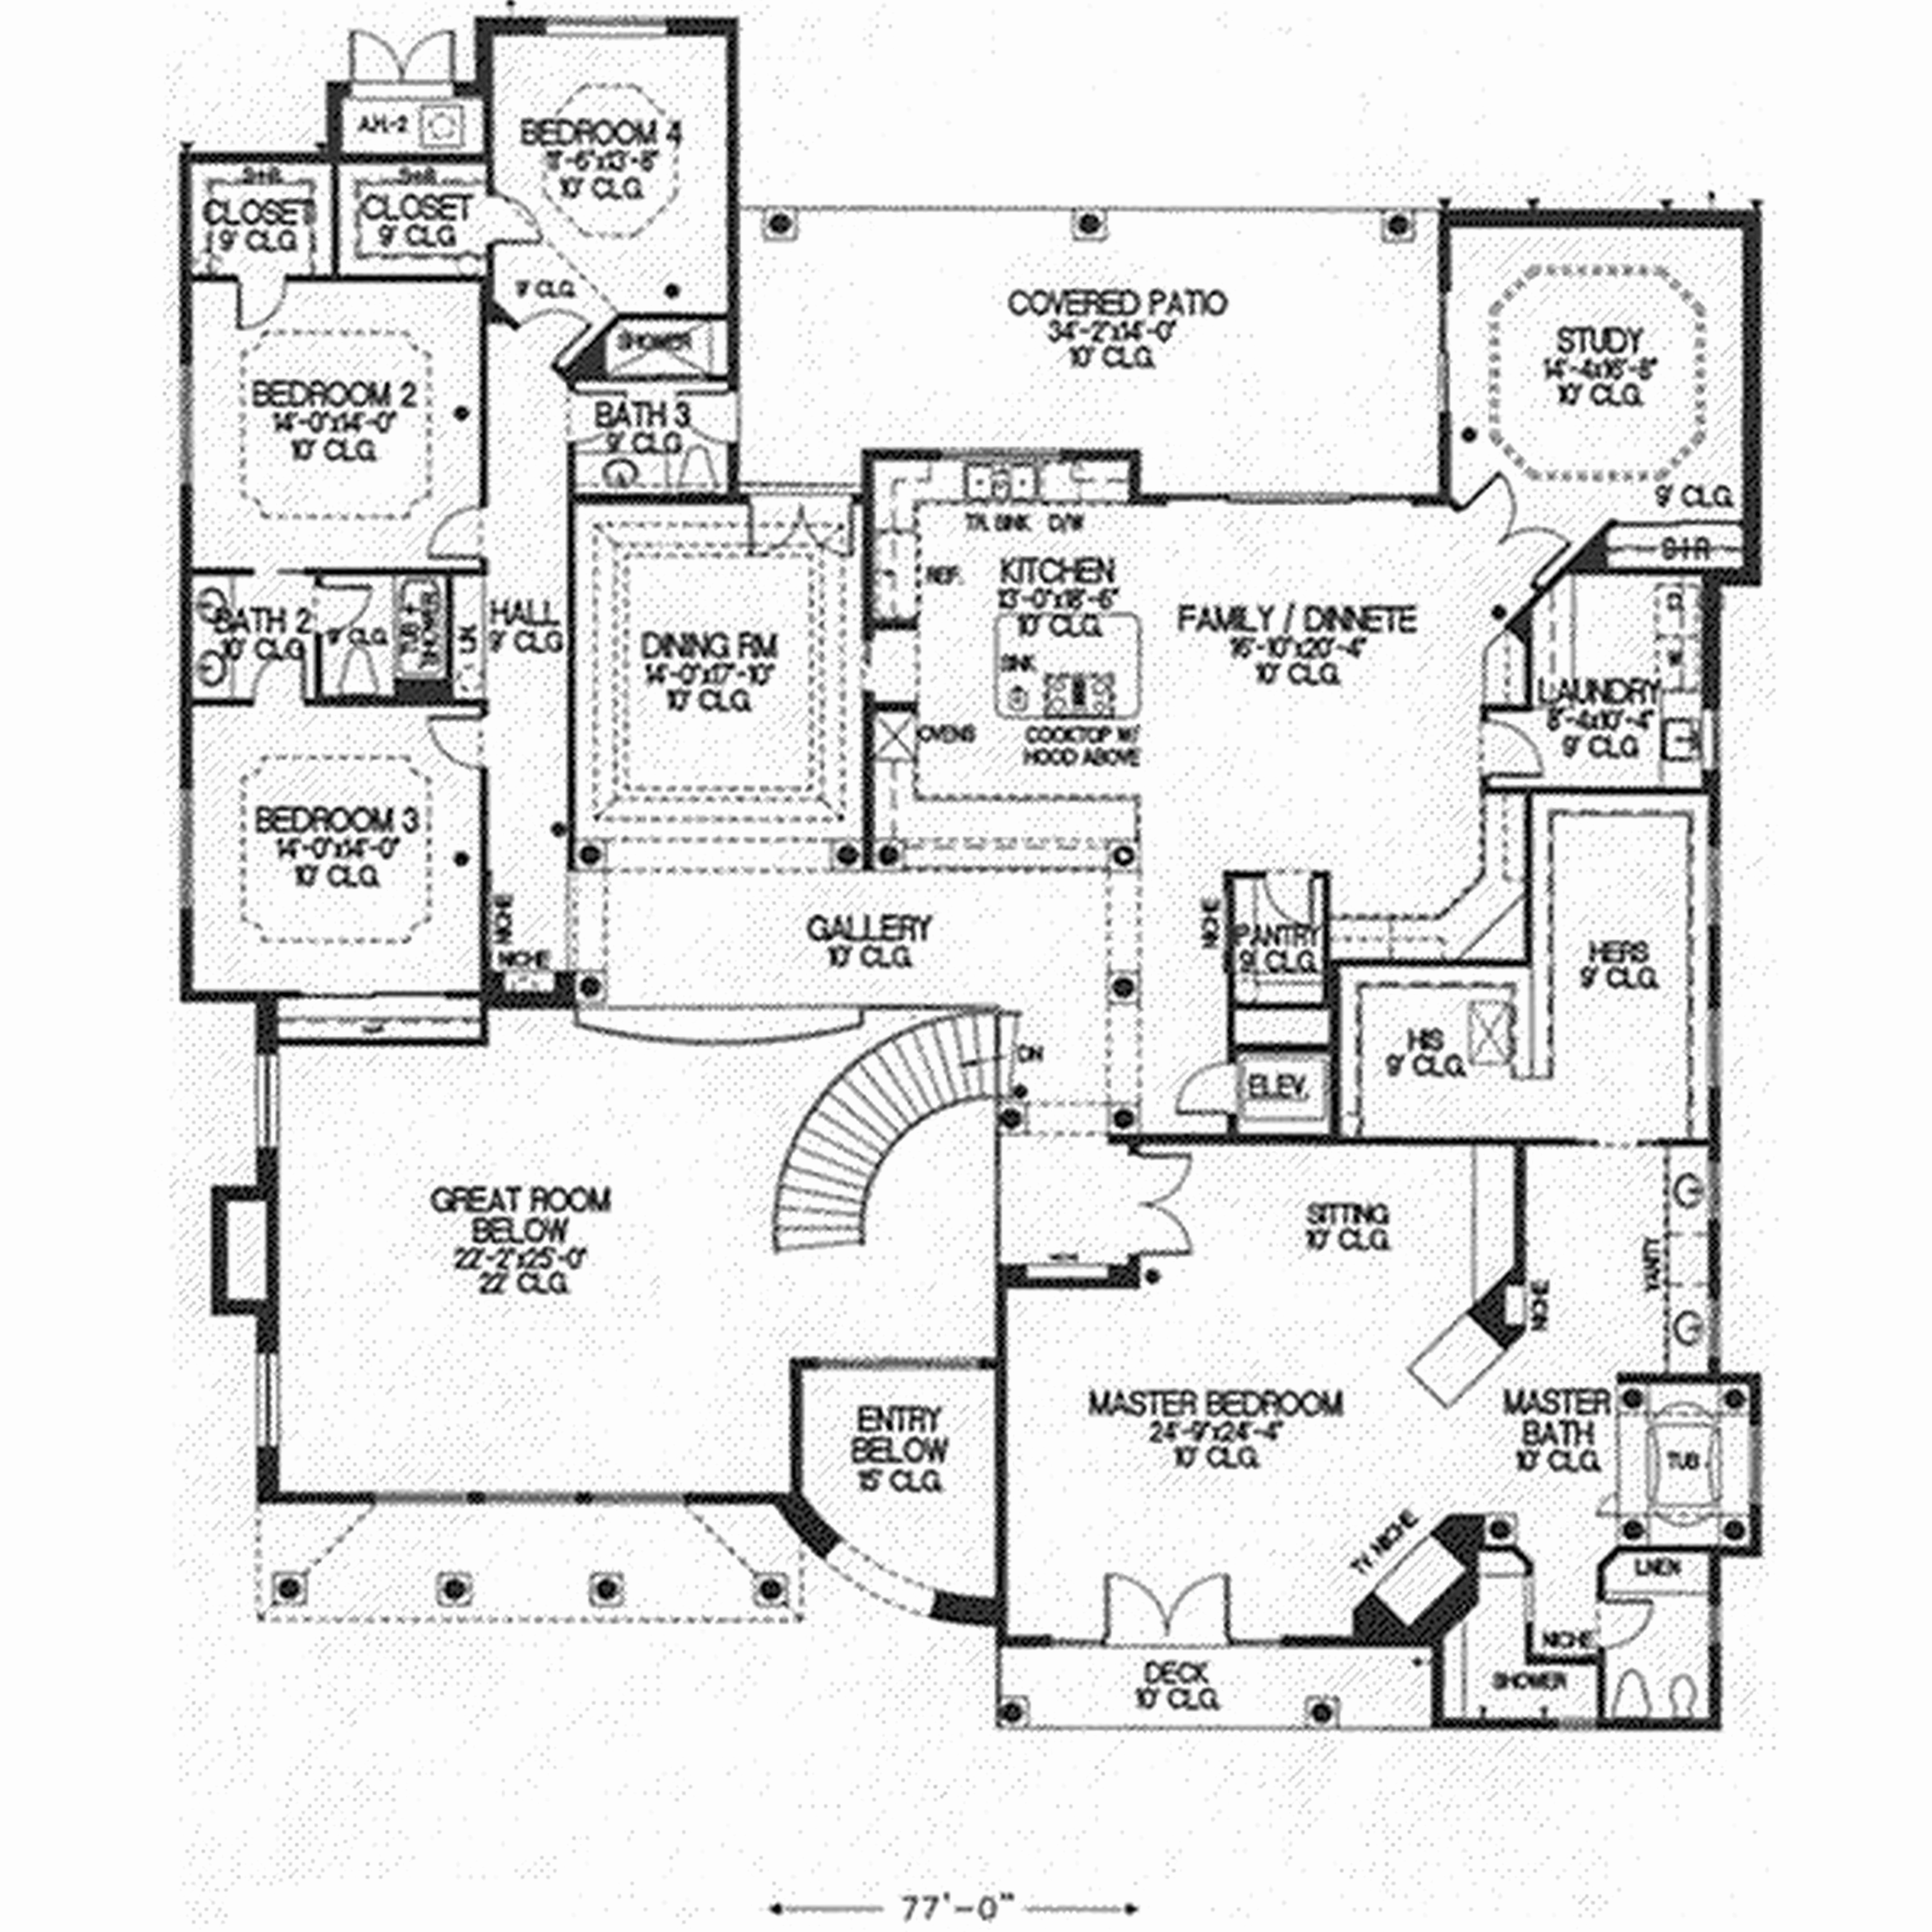 5000x5000 House Plans With Pictures Of Inside Inspirational Home Design 3